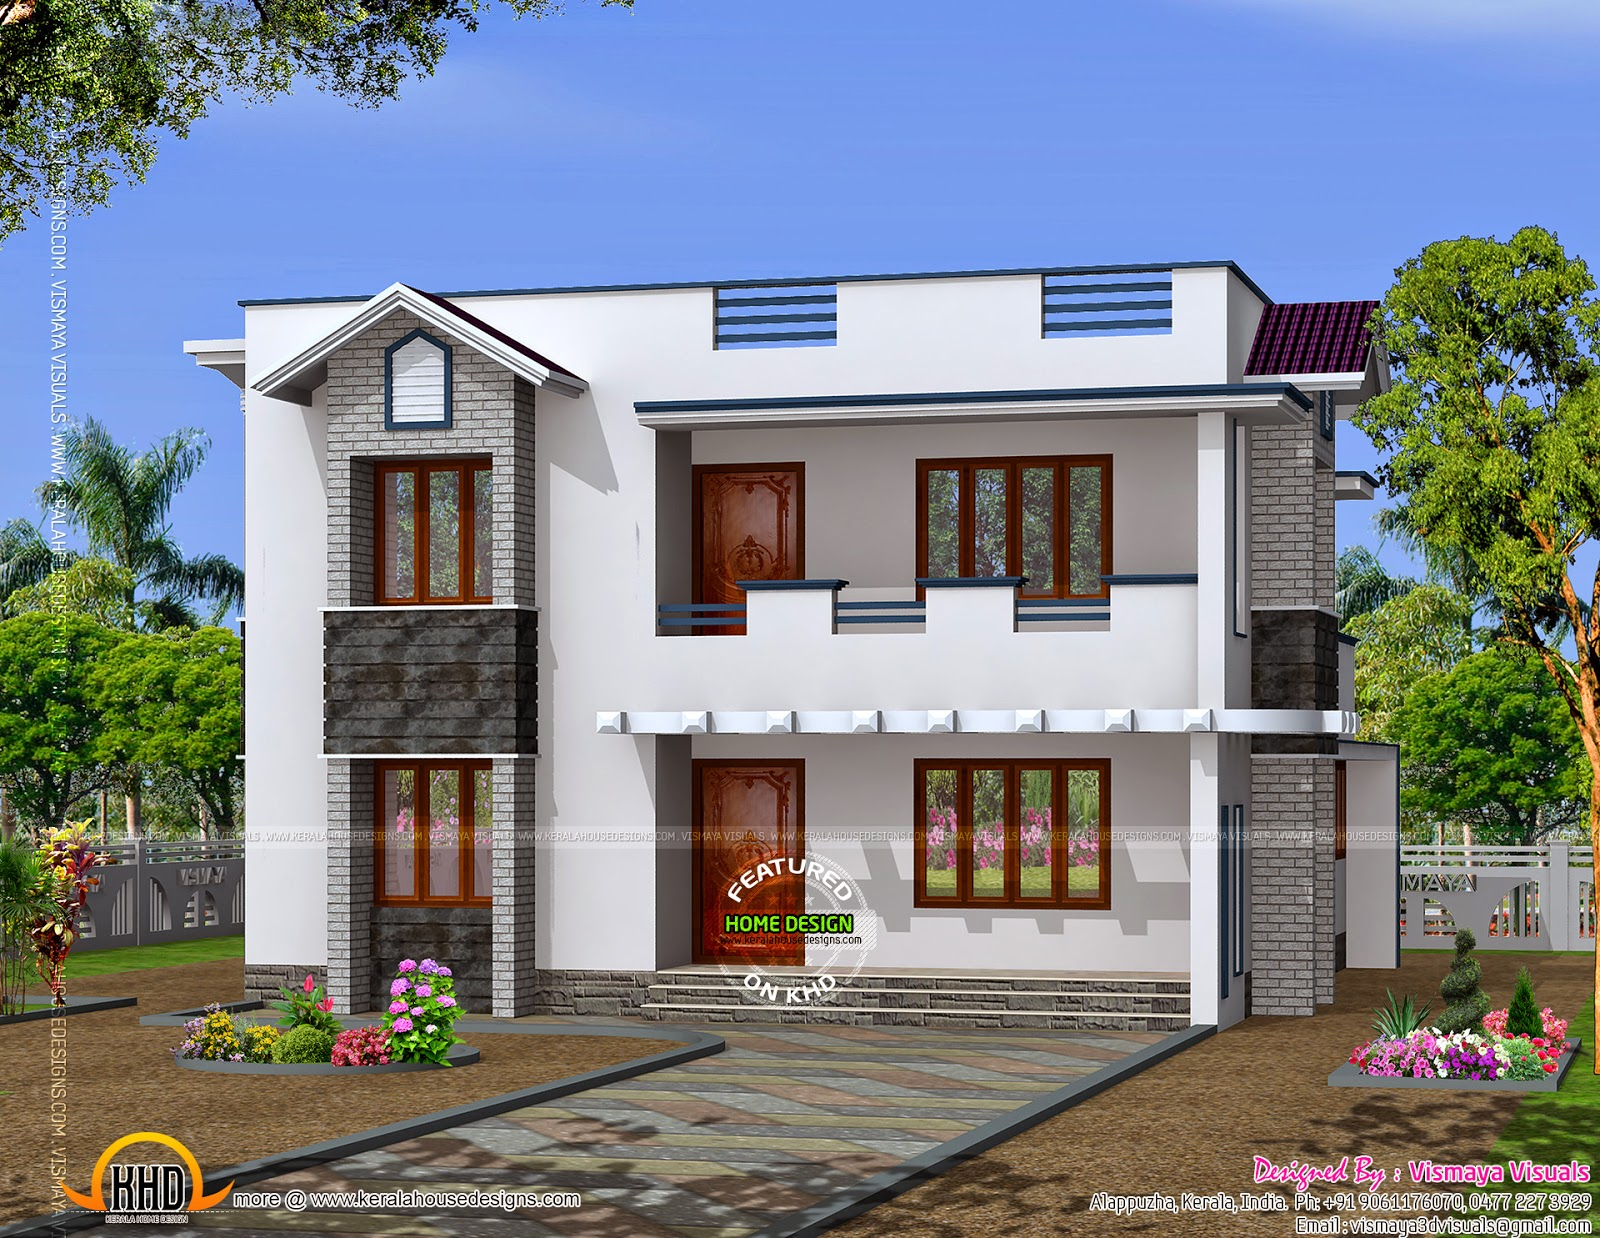 Simple design home kerala home design and floor plans for Home pland